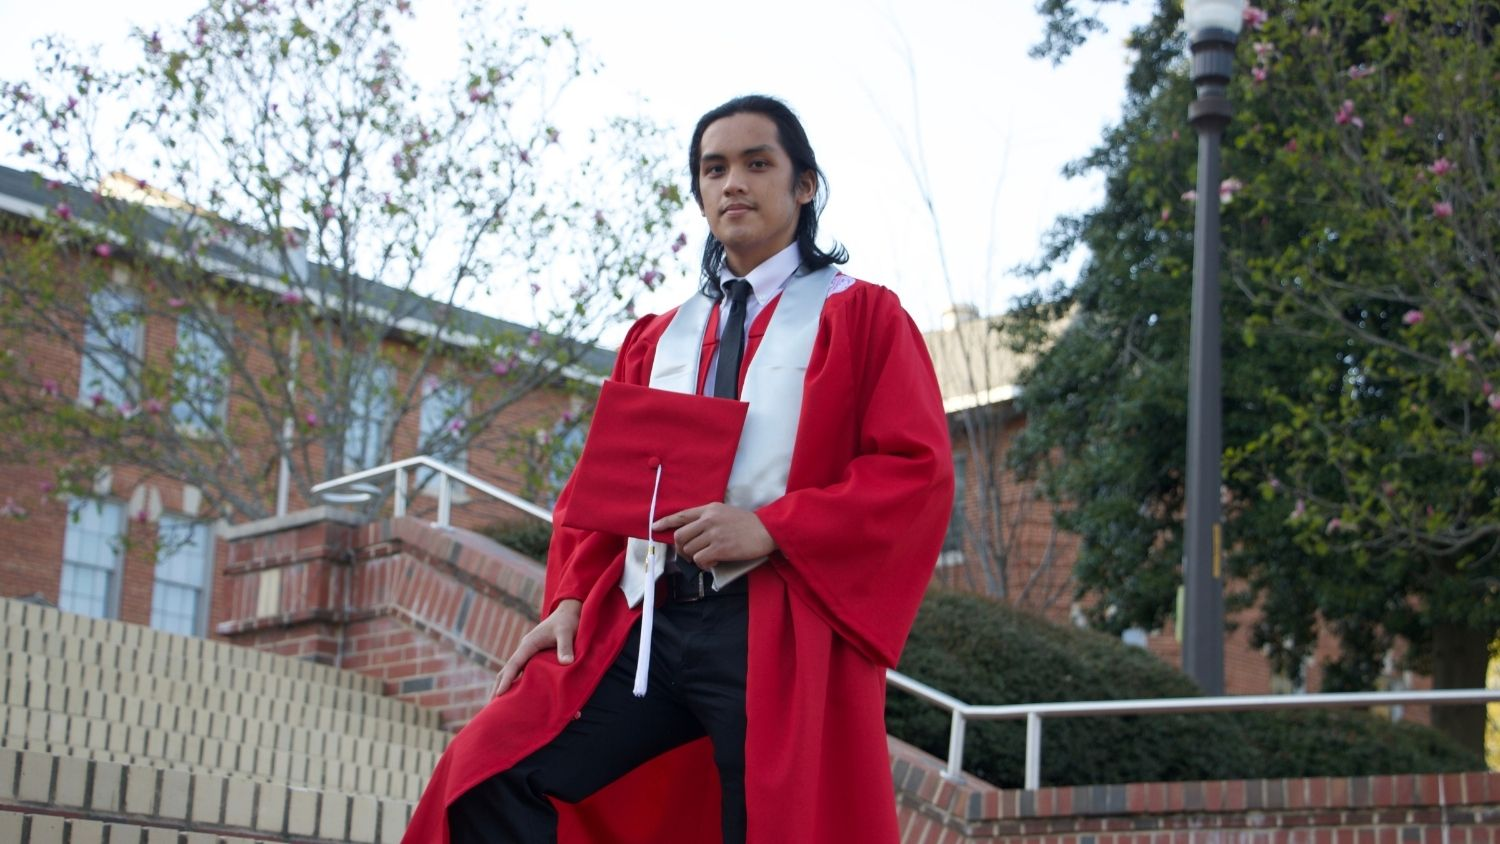 Joshua Pil - Graduation to Vocation: Supporting Rare Plant Species in North Carolina - College of Natural Resources News NC State University